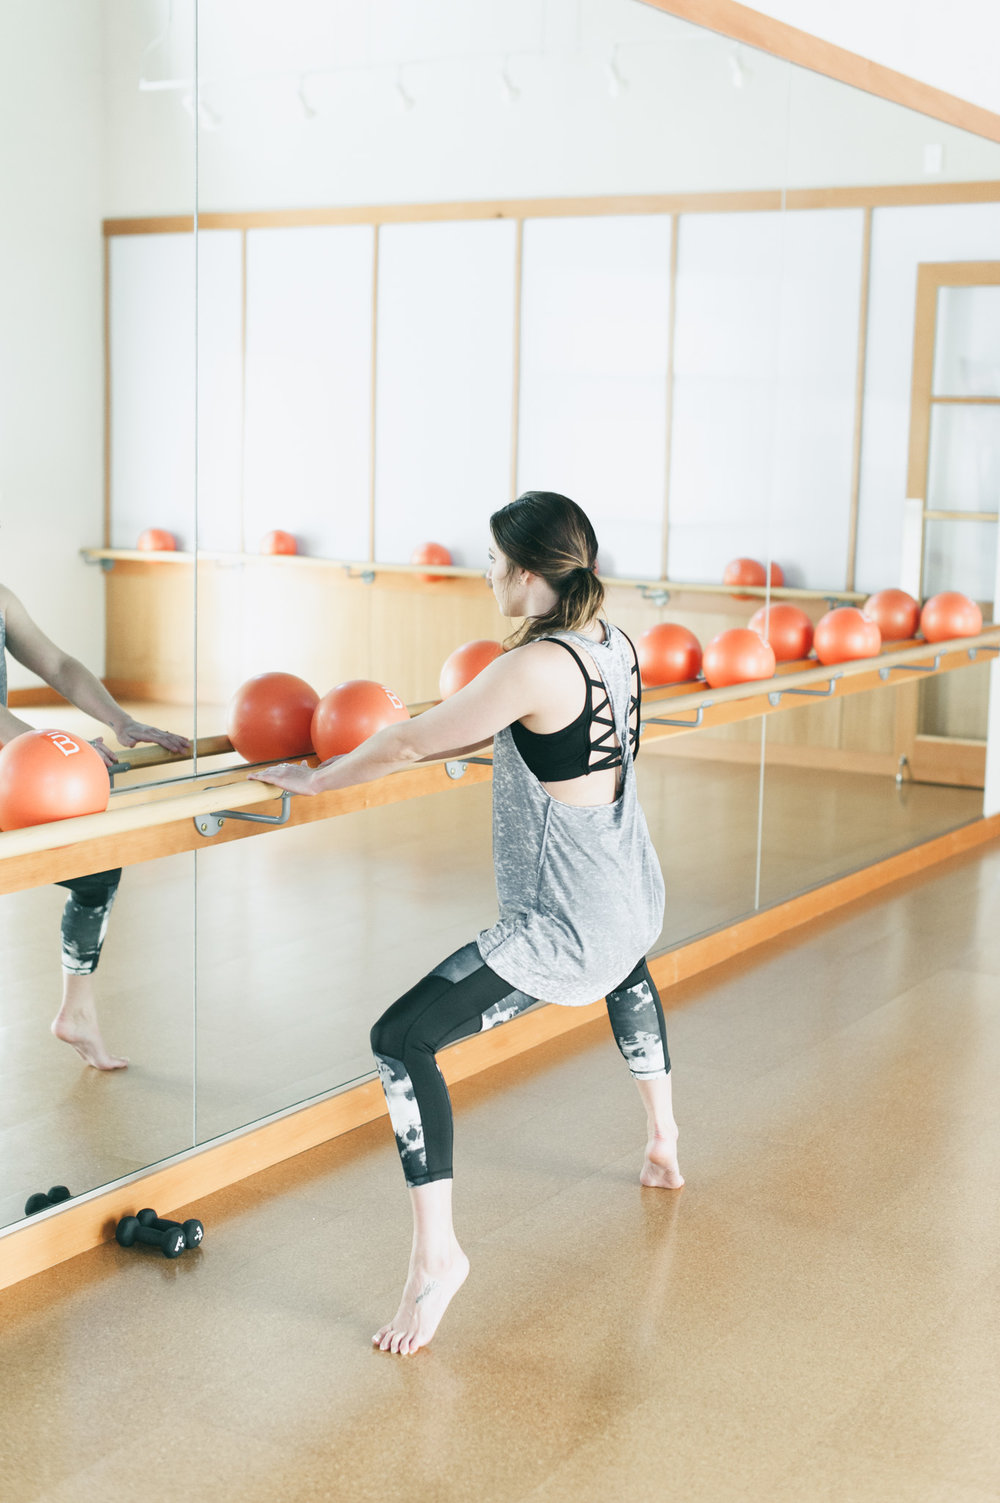 Copy of barre3sf2-100.jpg